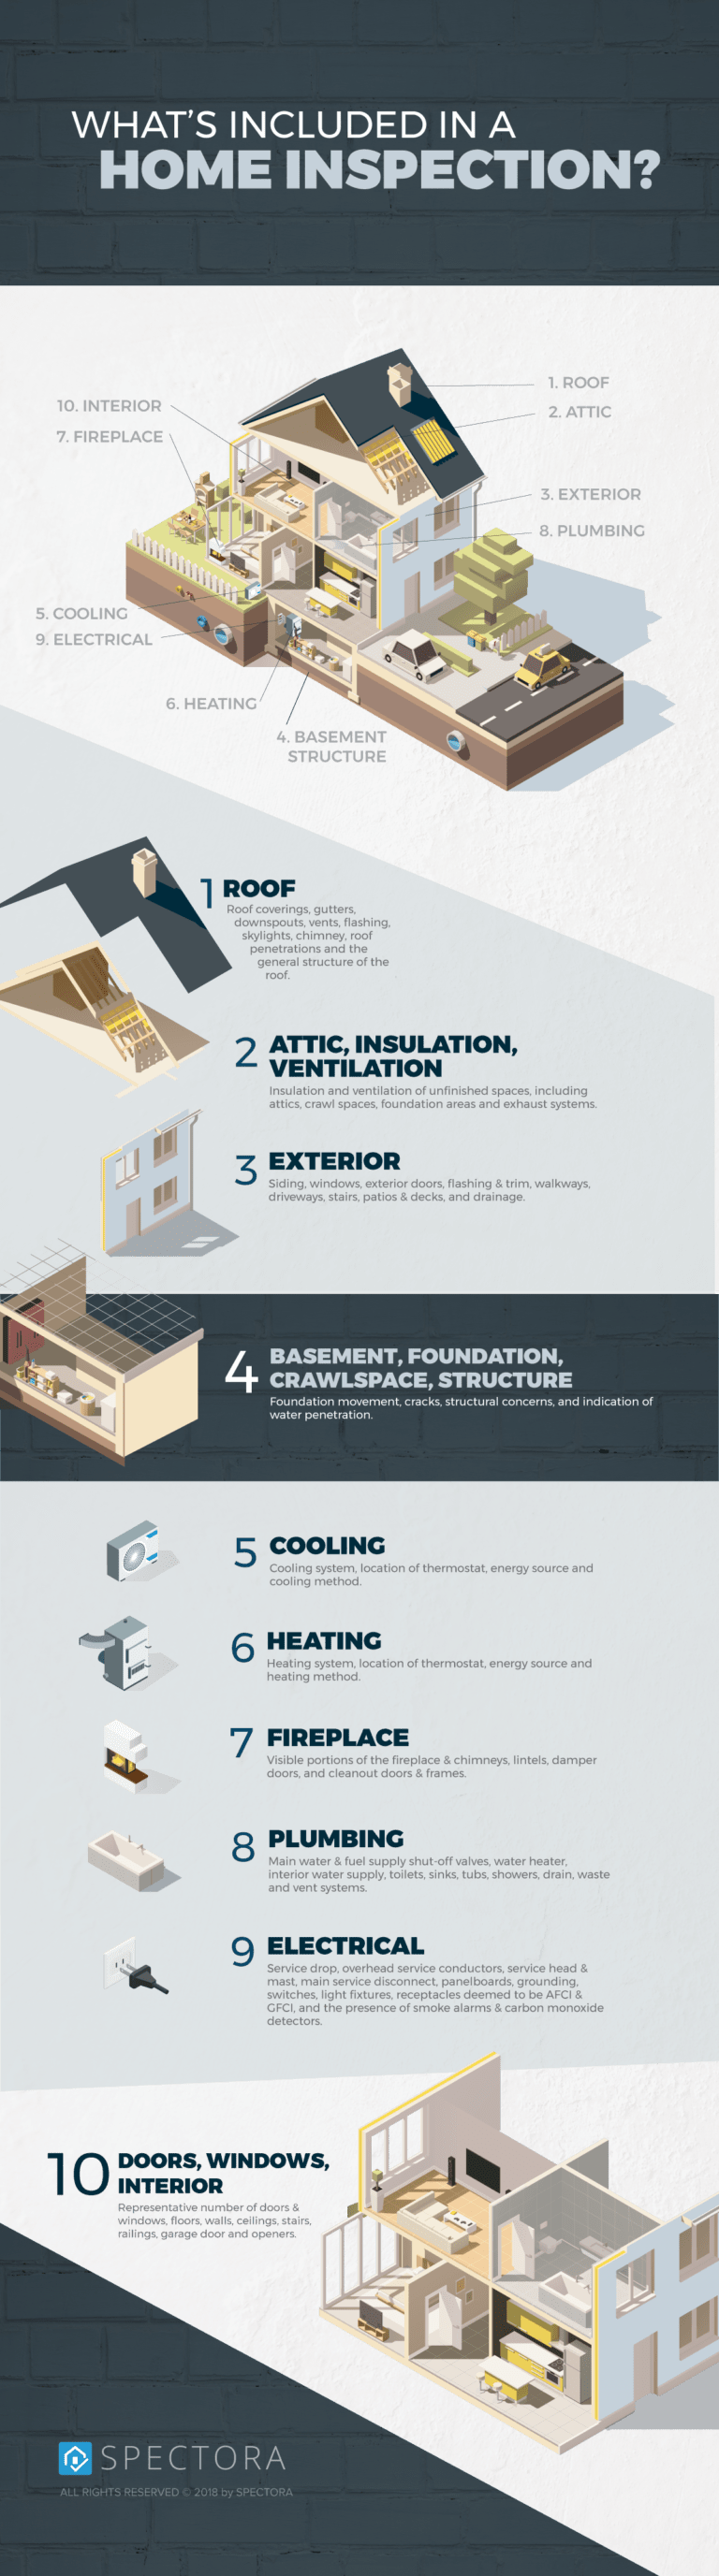 whats included in home inspection infographic